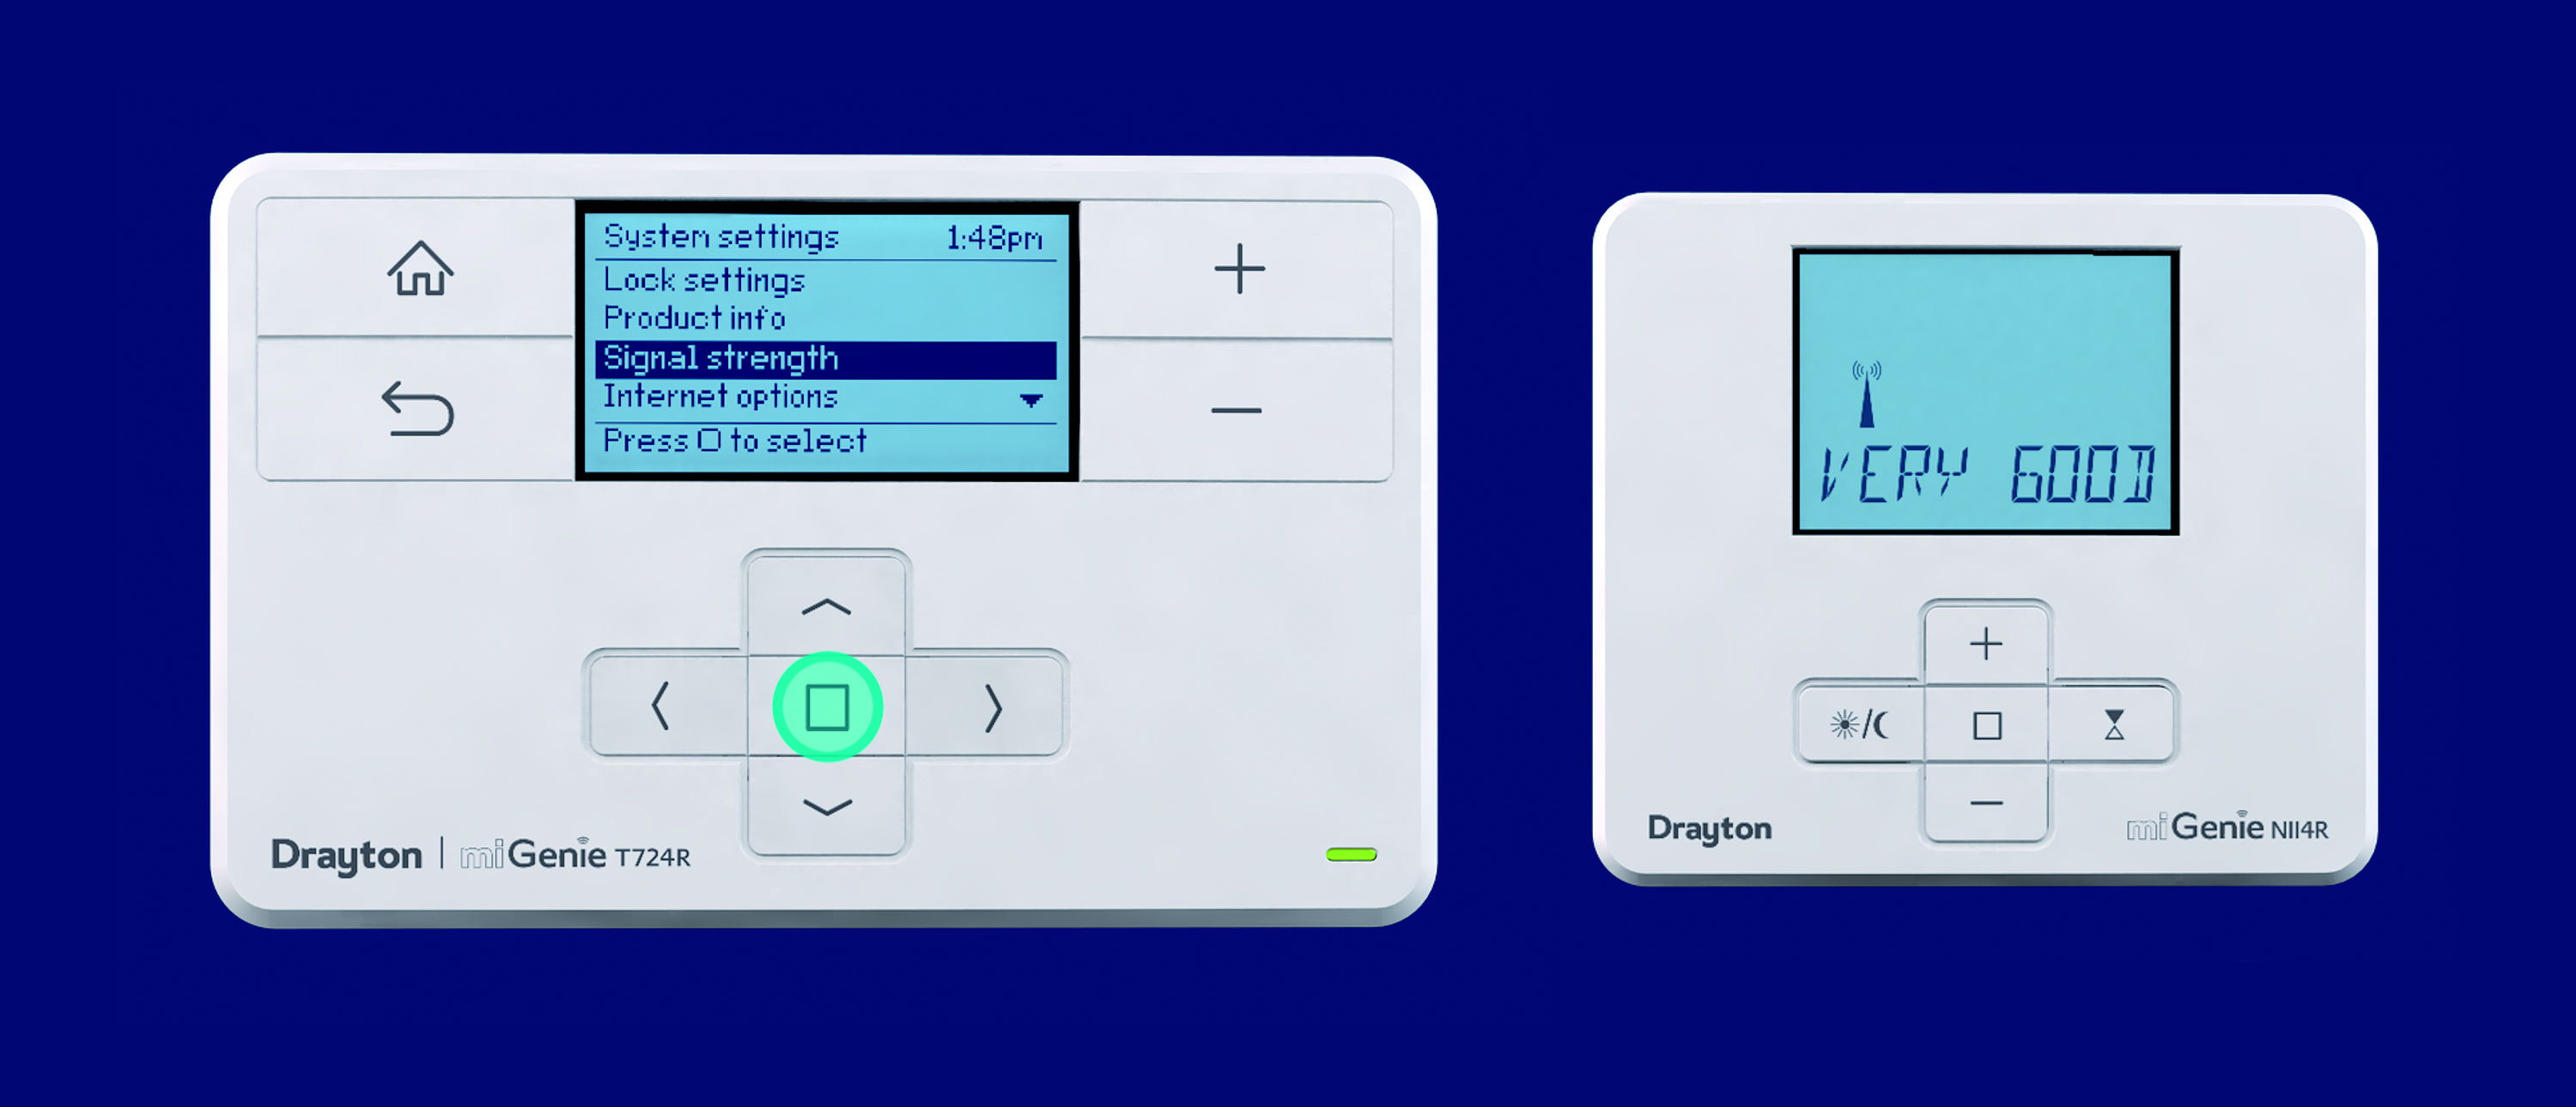 How To Install Drayton Migenie Smart Heating Controls Installer Heater Controller Rs25245 Screen 3